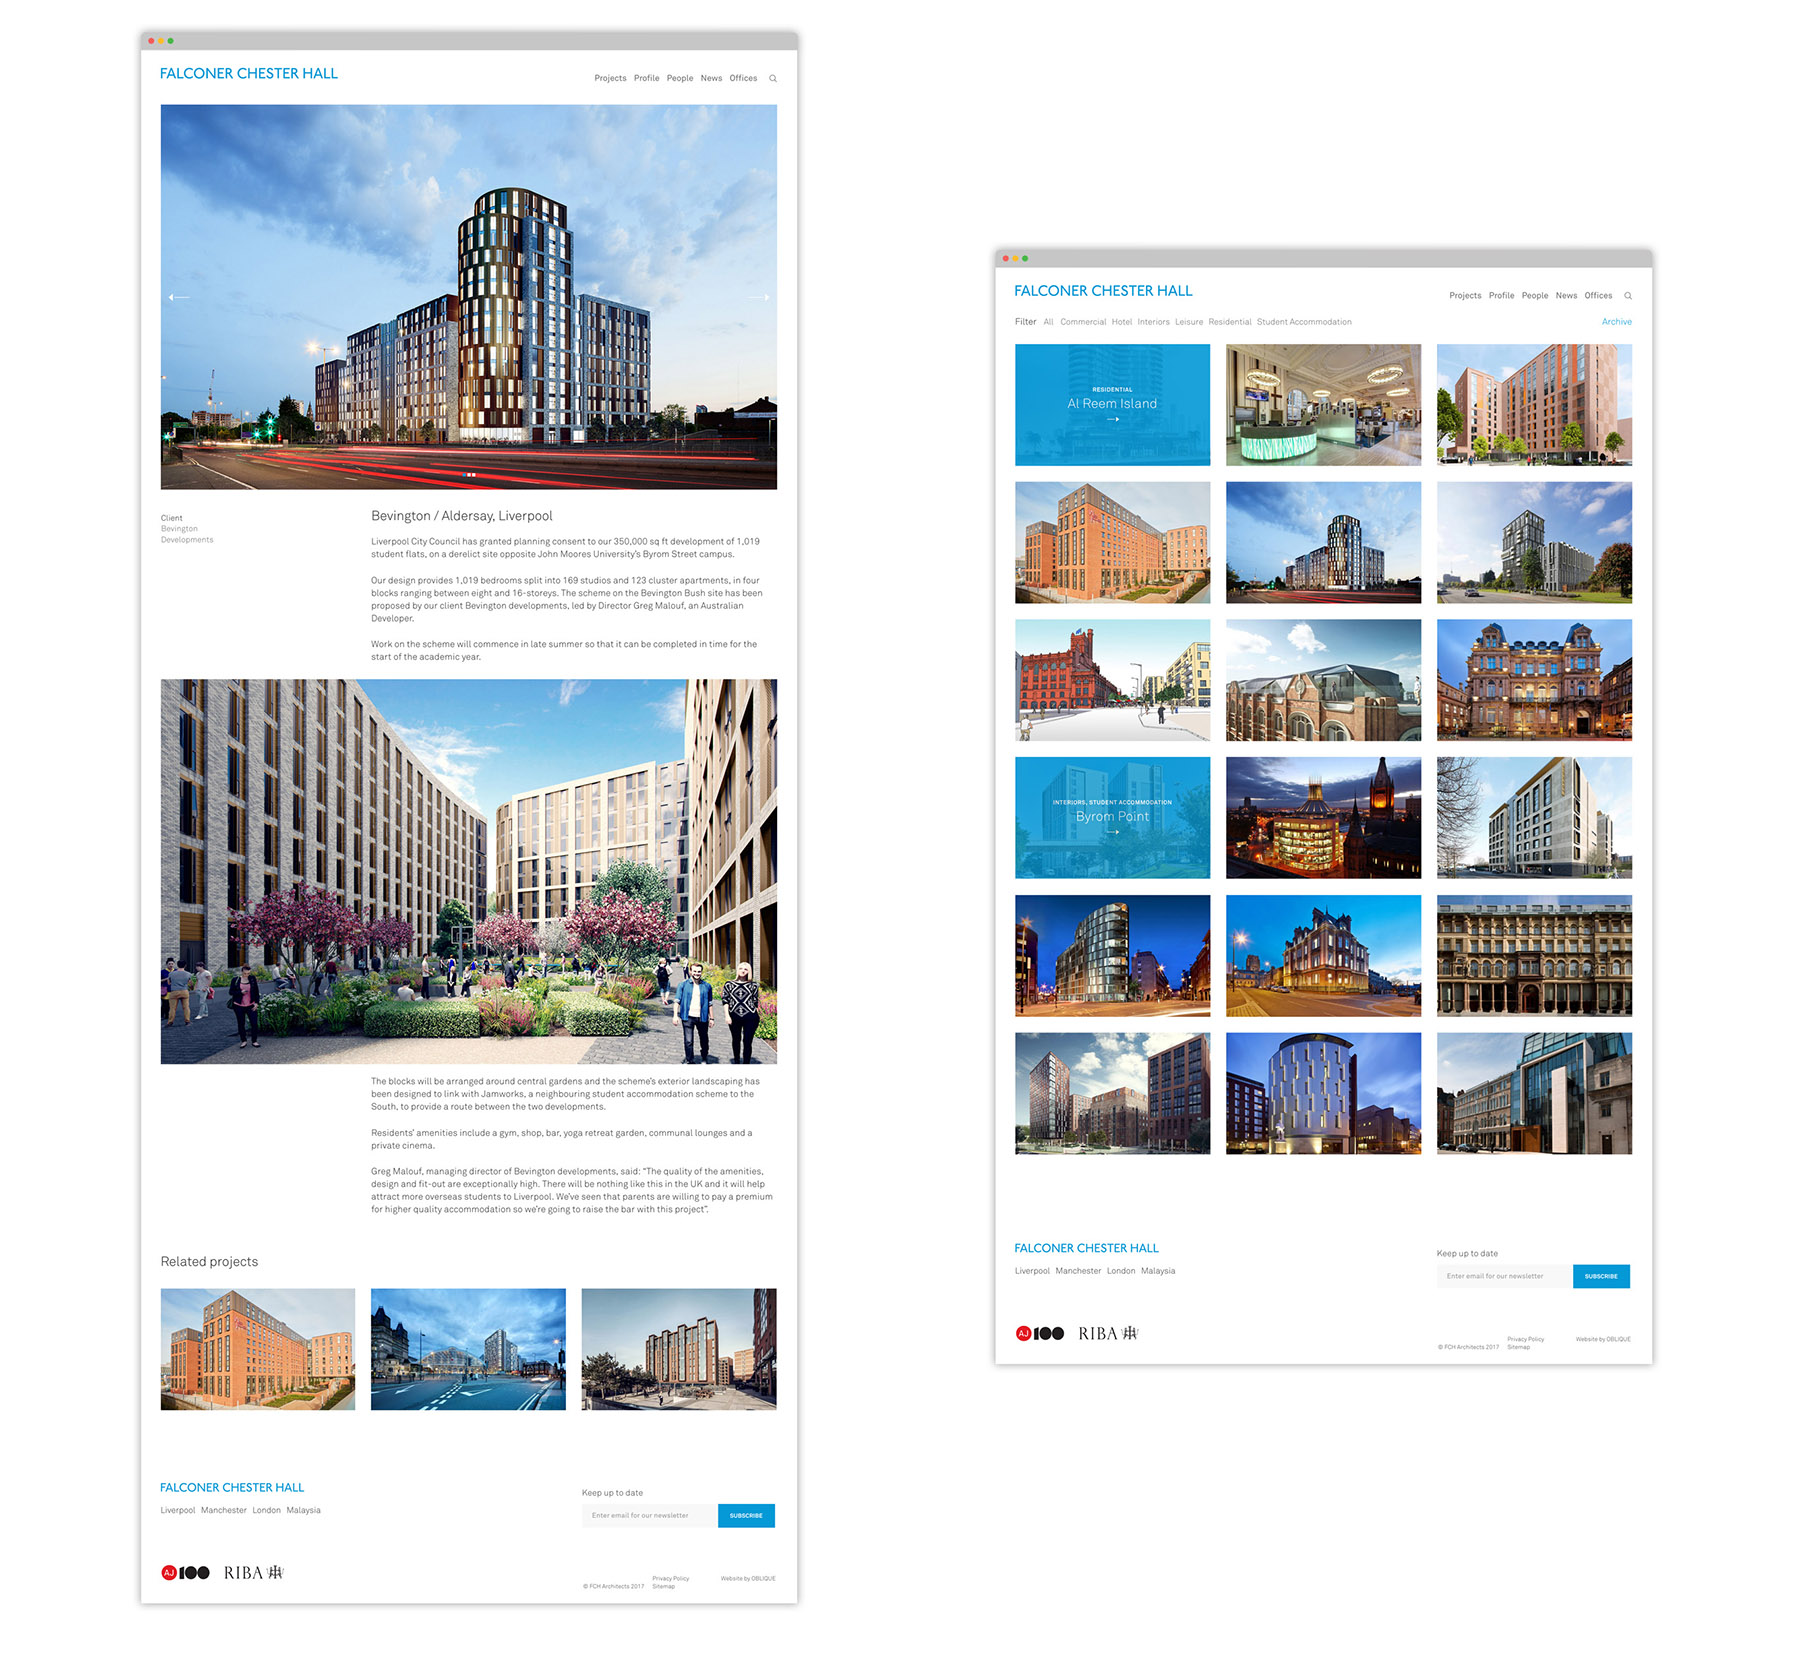 falconer-chester-hall-project-pages